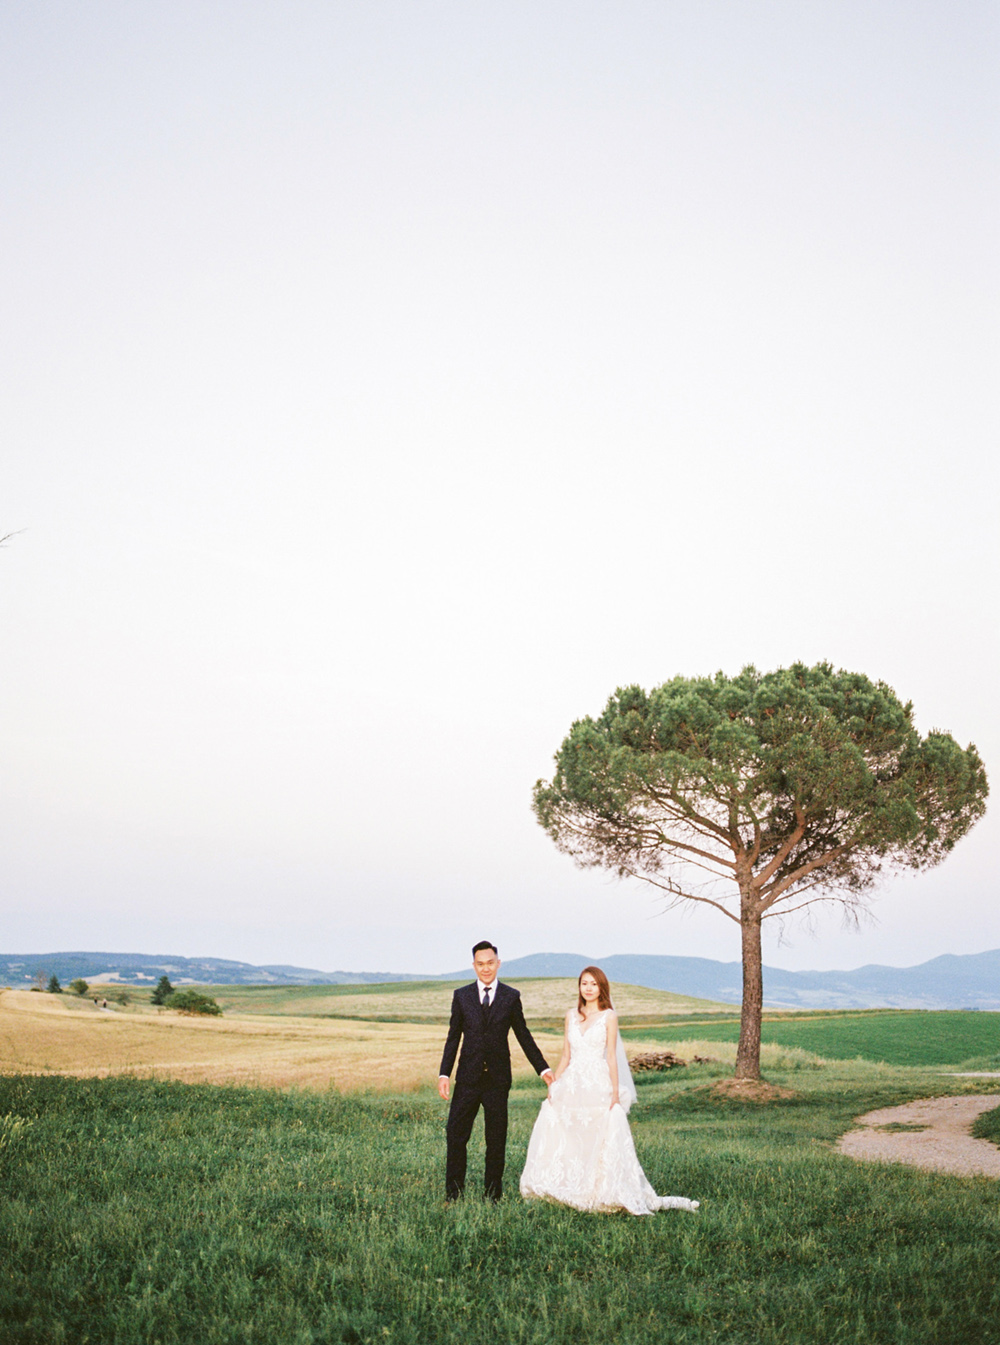 Winnie & Michael by CHYMO & MORE Photography - Highlight (58).jpg